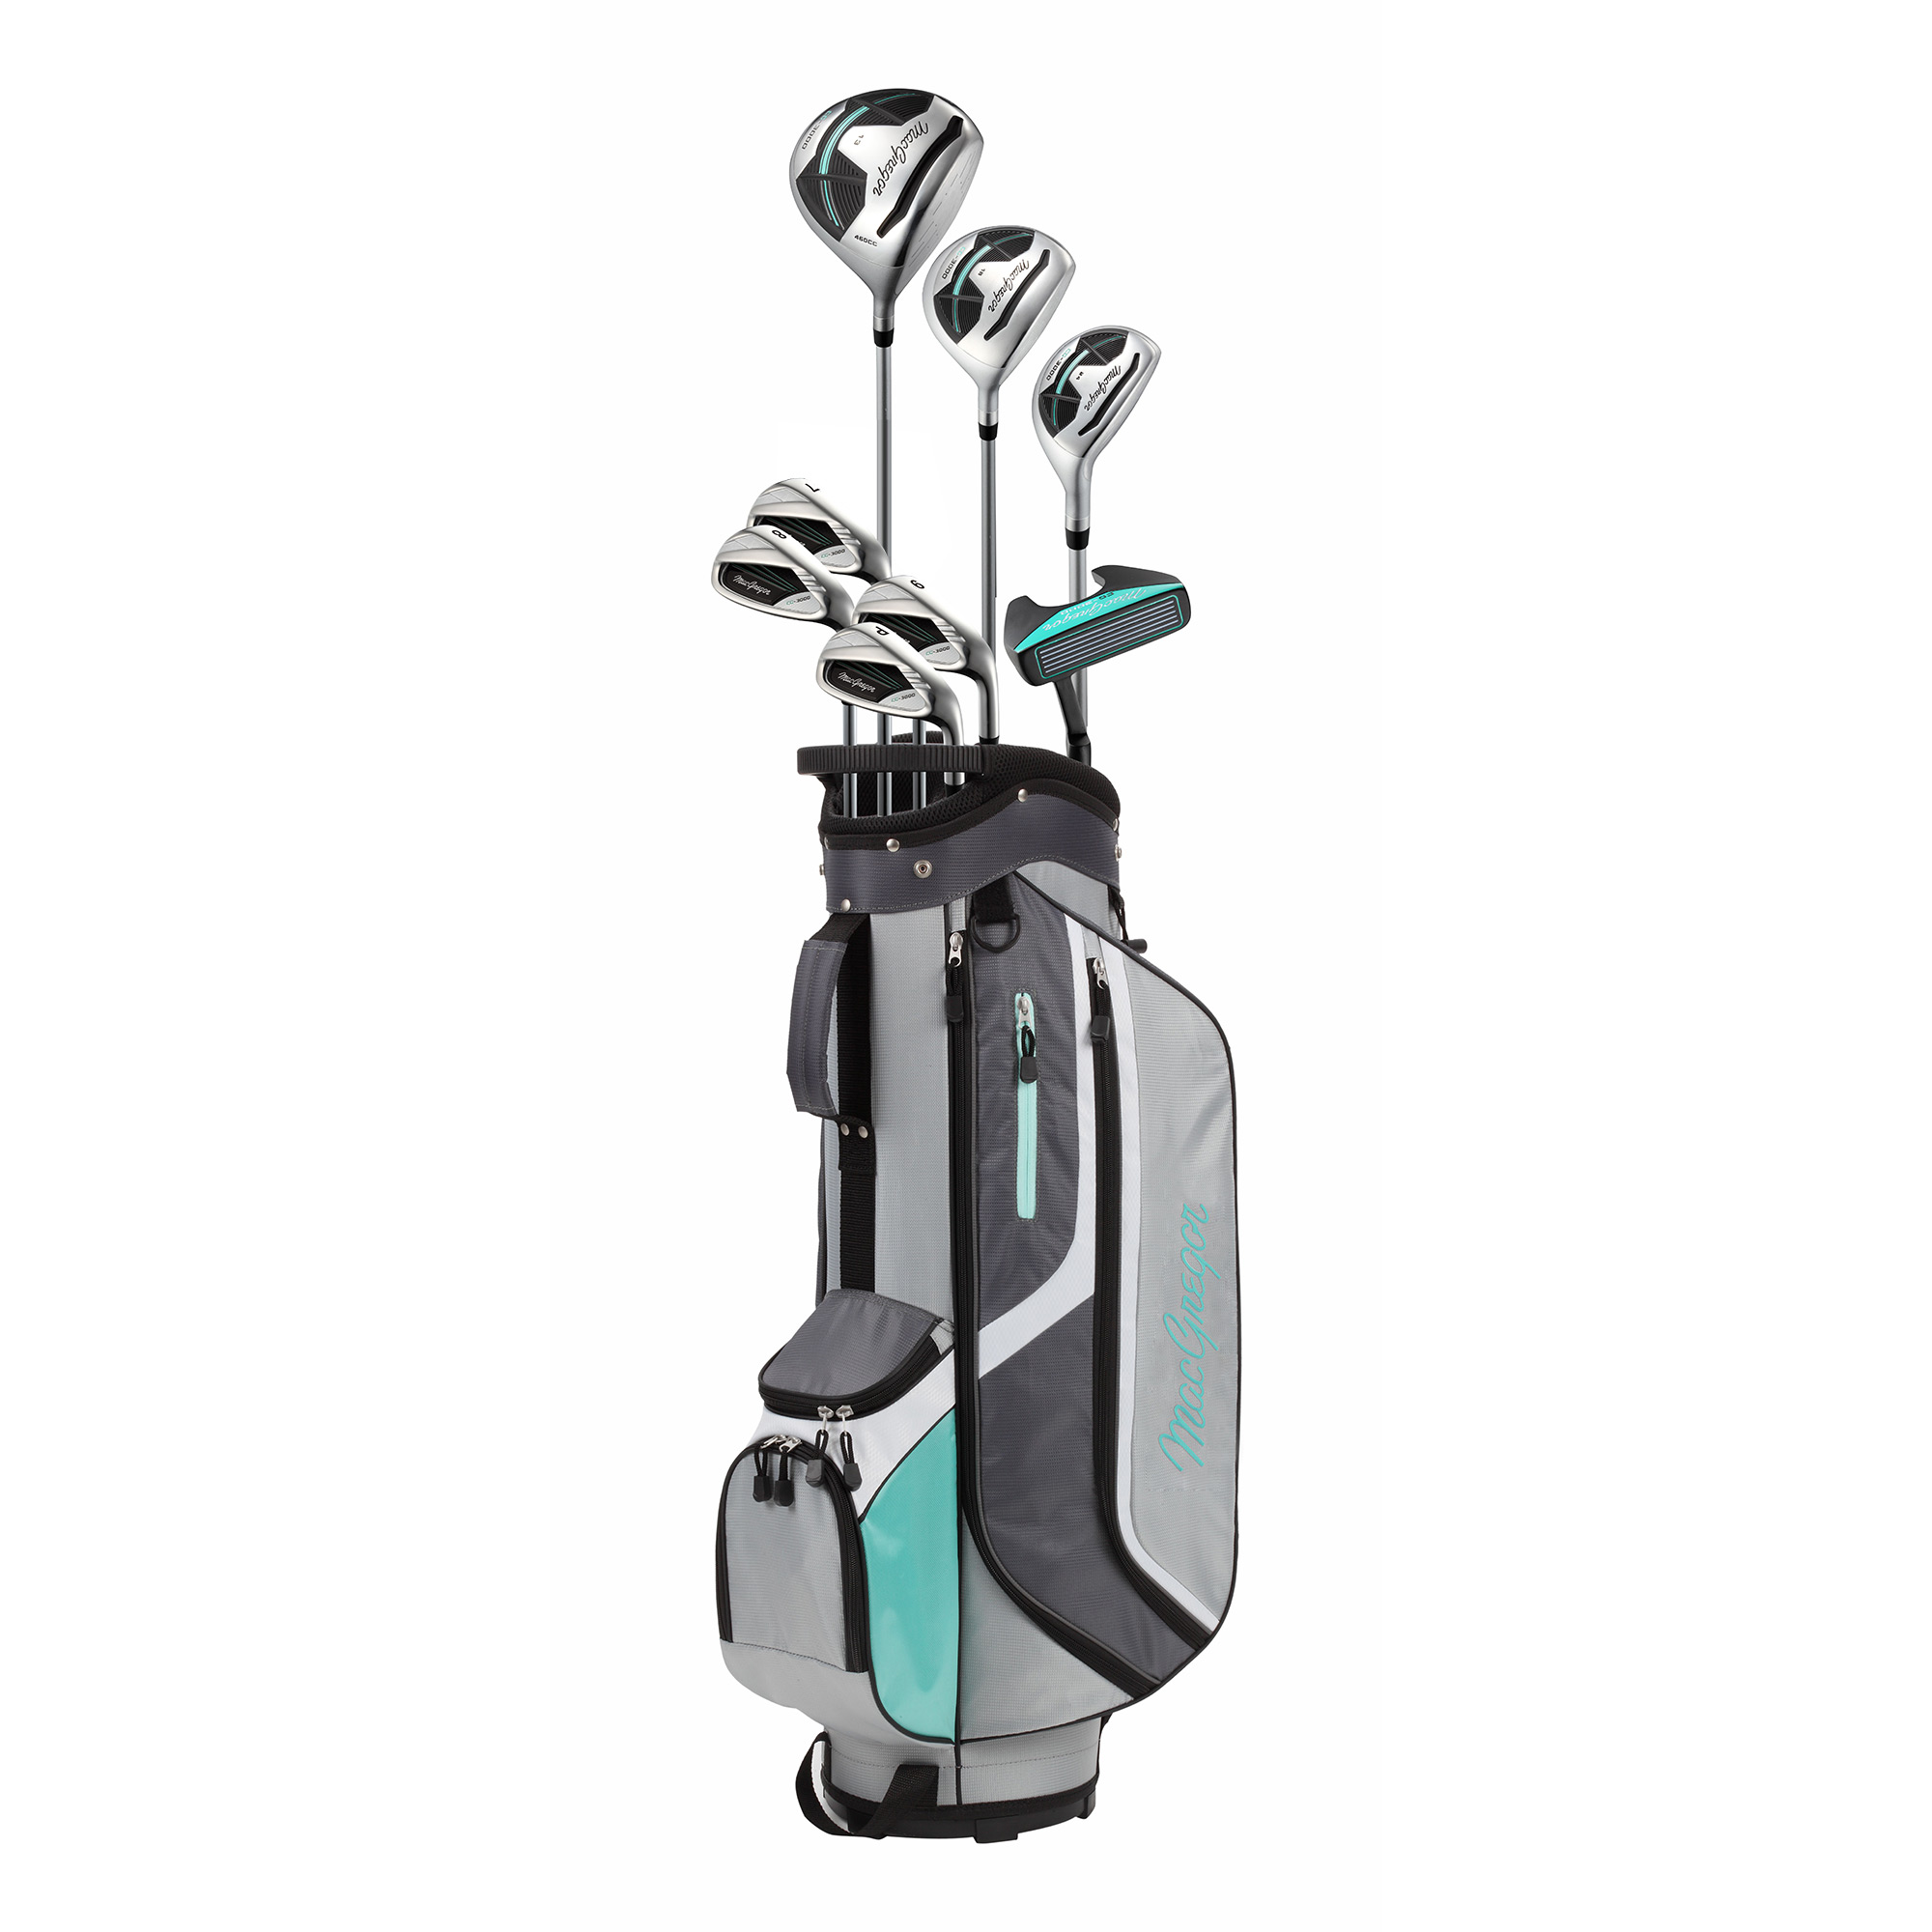 MacGregor Golf CG3000 Golf Clubs Set with Bag, Ladies Right